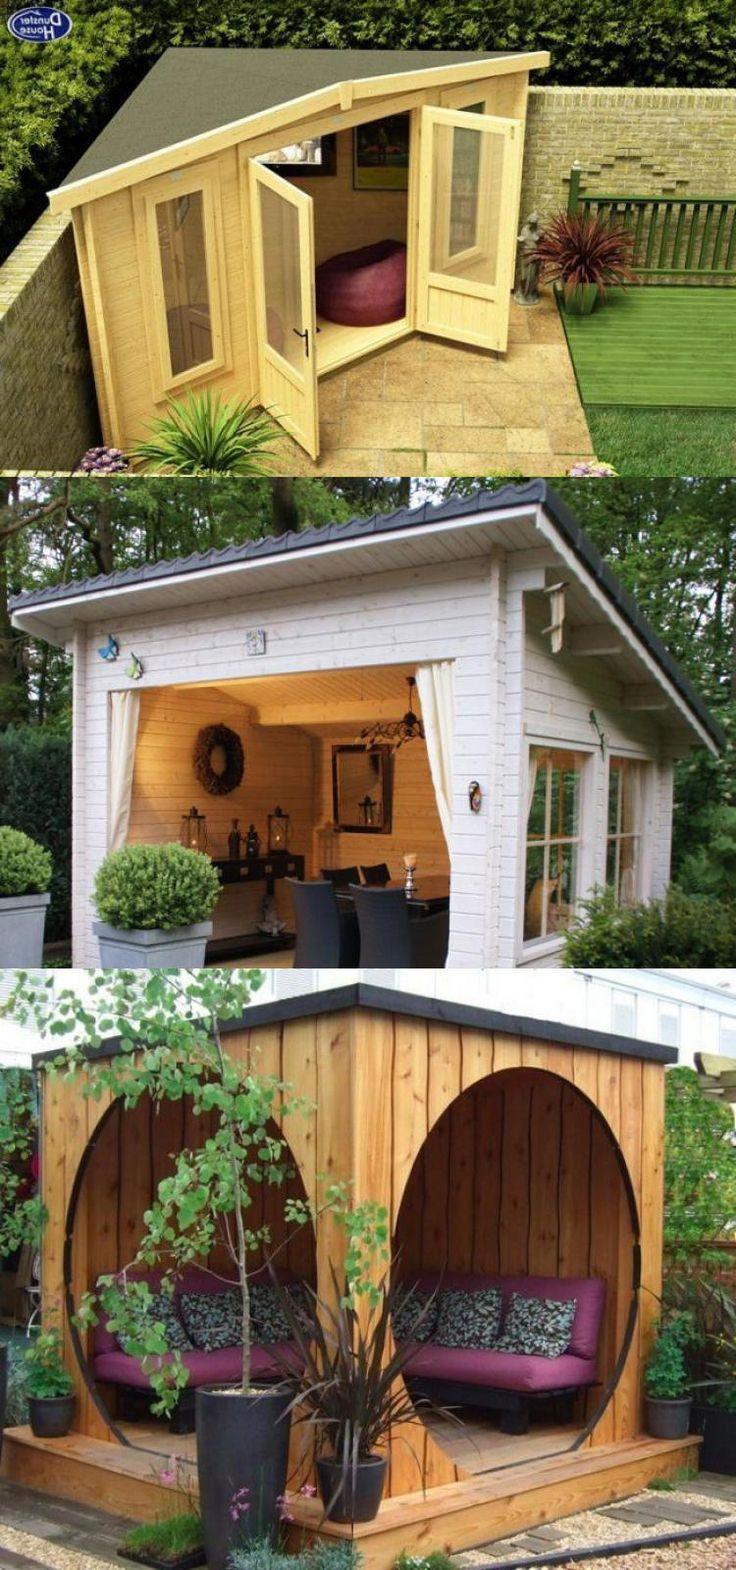 20 Adorable Outdoor Gazebo Design - Beautiful Improvement For Your Home